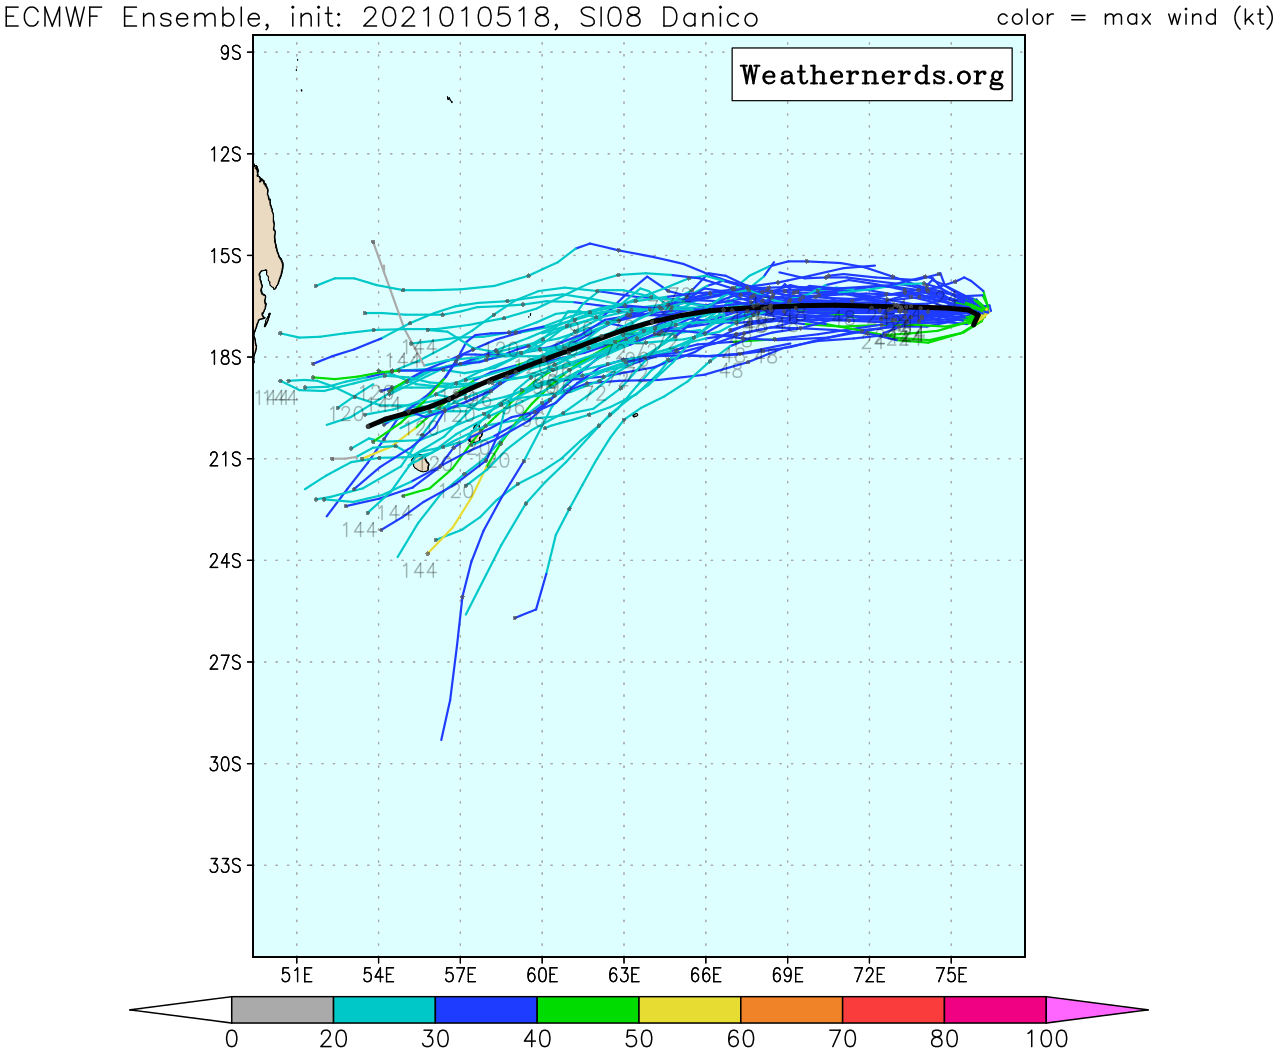 TC 08S.TRACK AND INTENSITY GUIDANCE. ECMWF DOES NOT DEVELOP THIS SYSTEM MUCH RIGHT NOW.